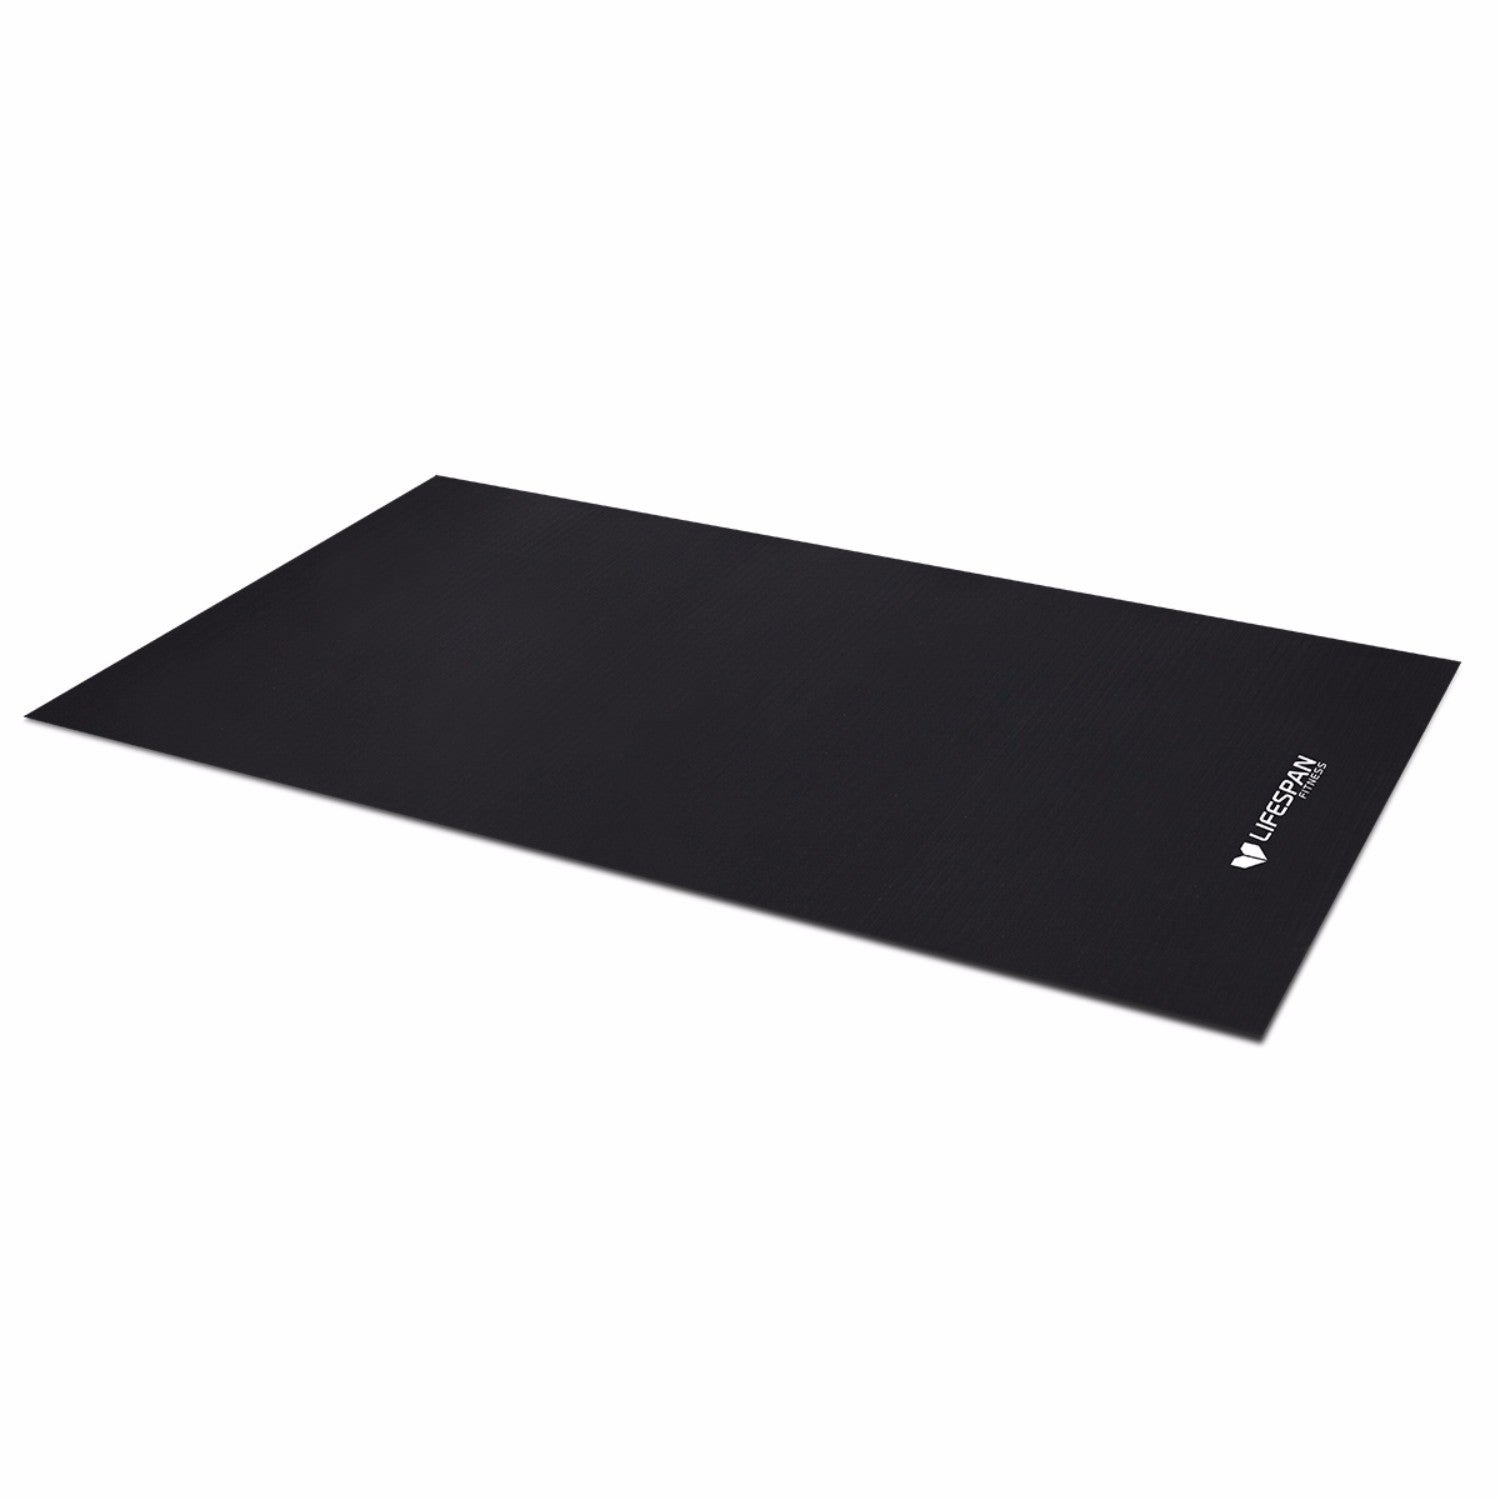 Exercise Equipment Floor Mat 1.5m x 1m x 4mm